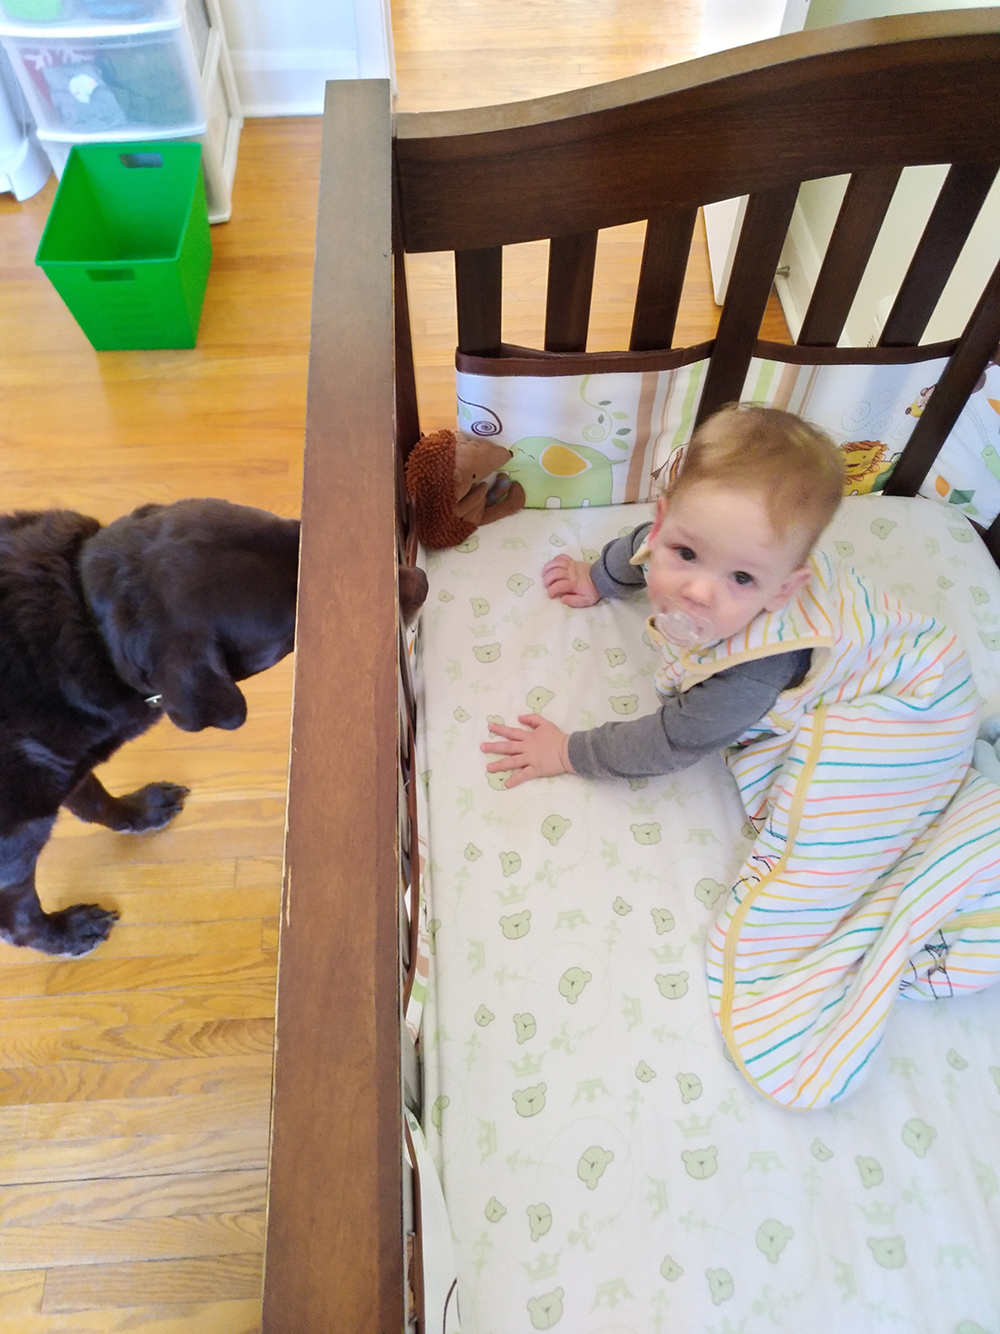 Sleepy baby and curious pup.